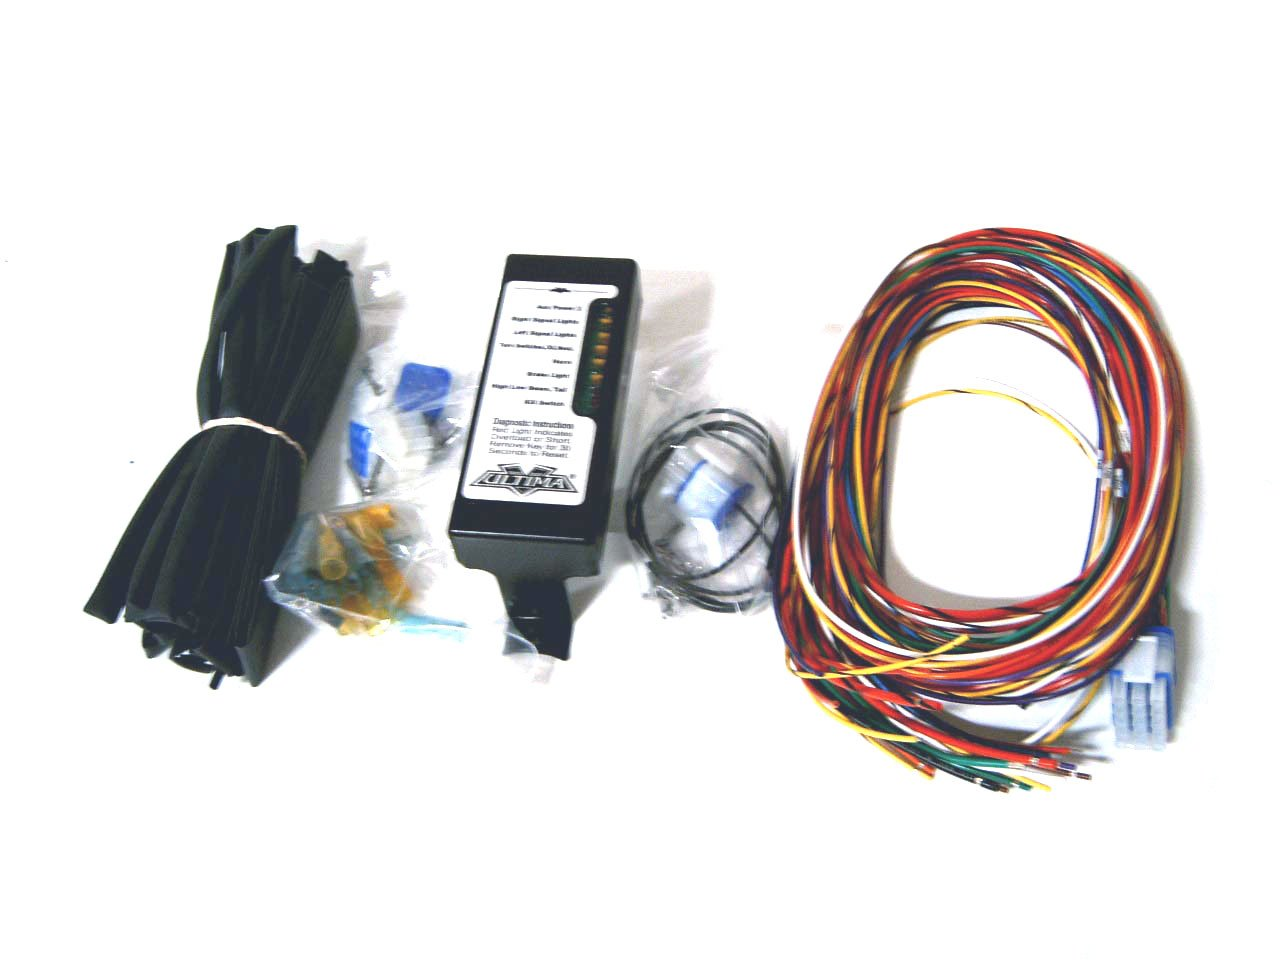 61DV2Bq5%2BHL._SL1280_ amazon com ultima complete wiring harness kit for harley davidson  at reclaimingppi.co